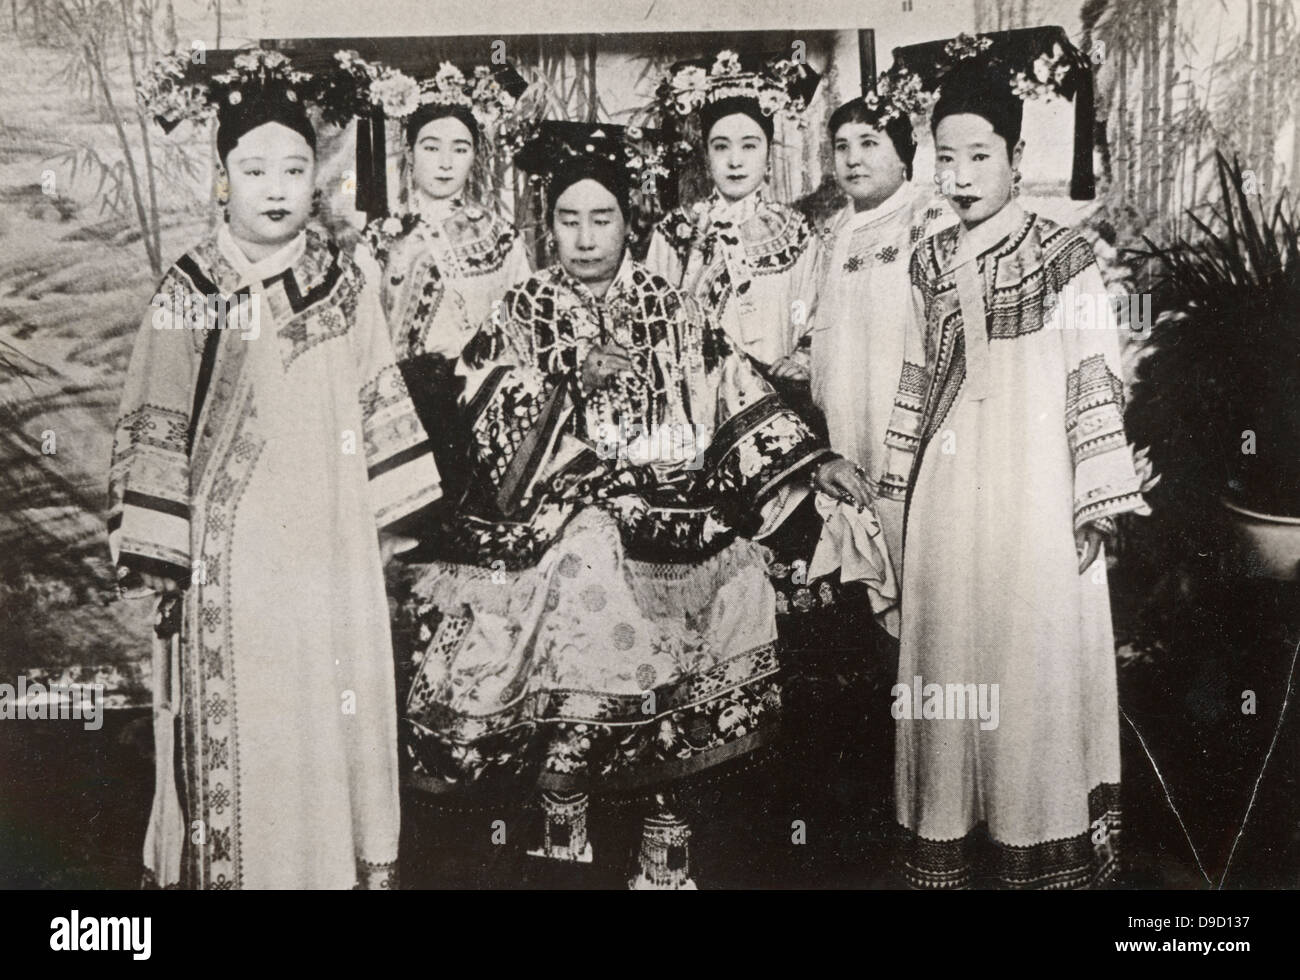 the empress dowager cixi Artworks from the collection of the empress dowager cixi come to the bowers  museum, shedding light on the interaction of taste and power in.